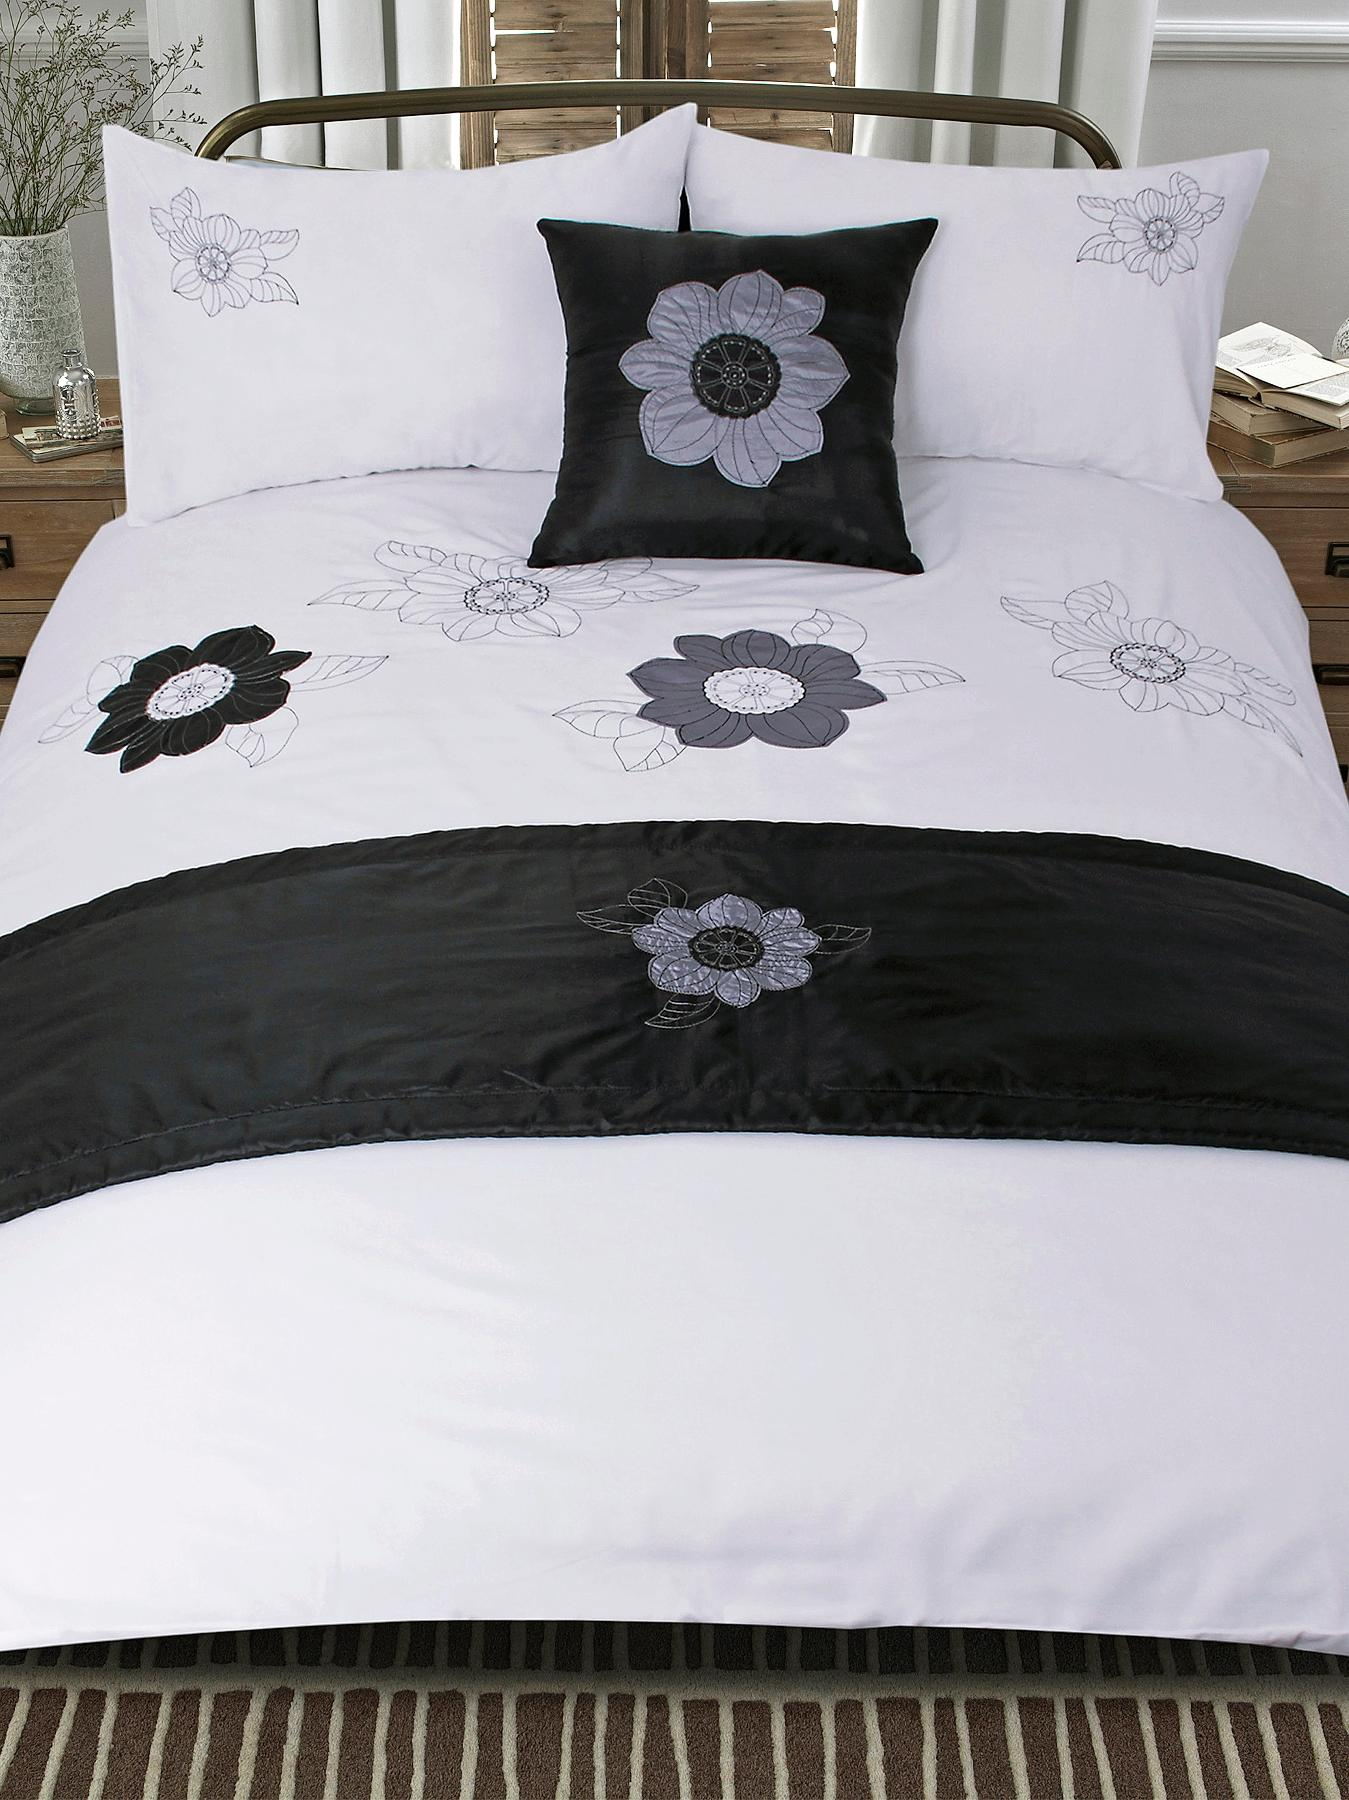 Floral Applique Bed in a Bag, Black